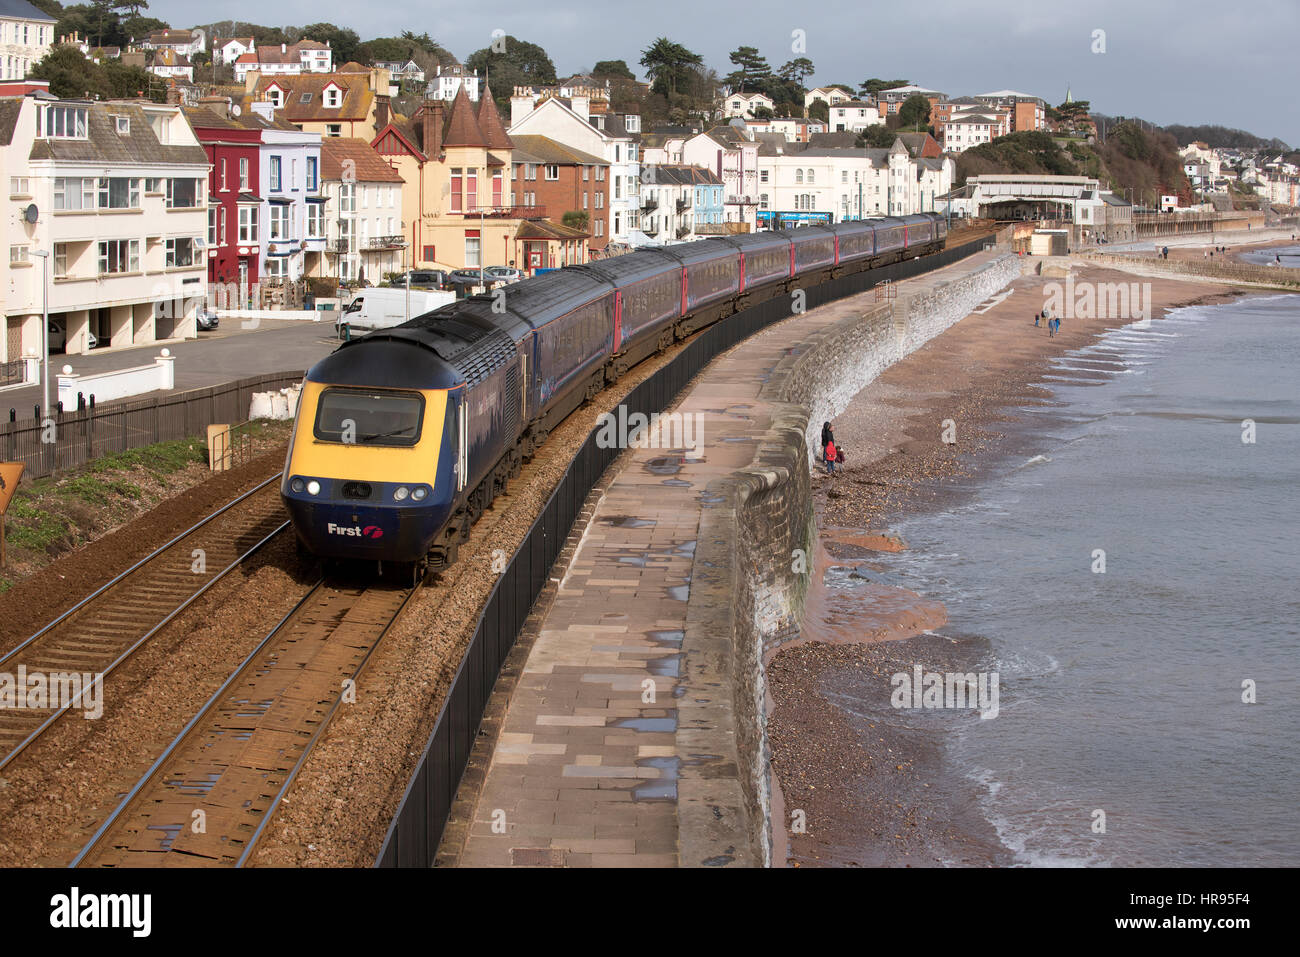 A Virgin Trains passenger train passing Dawlish a seaside resort in south Devon England UK - Stock Image